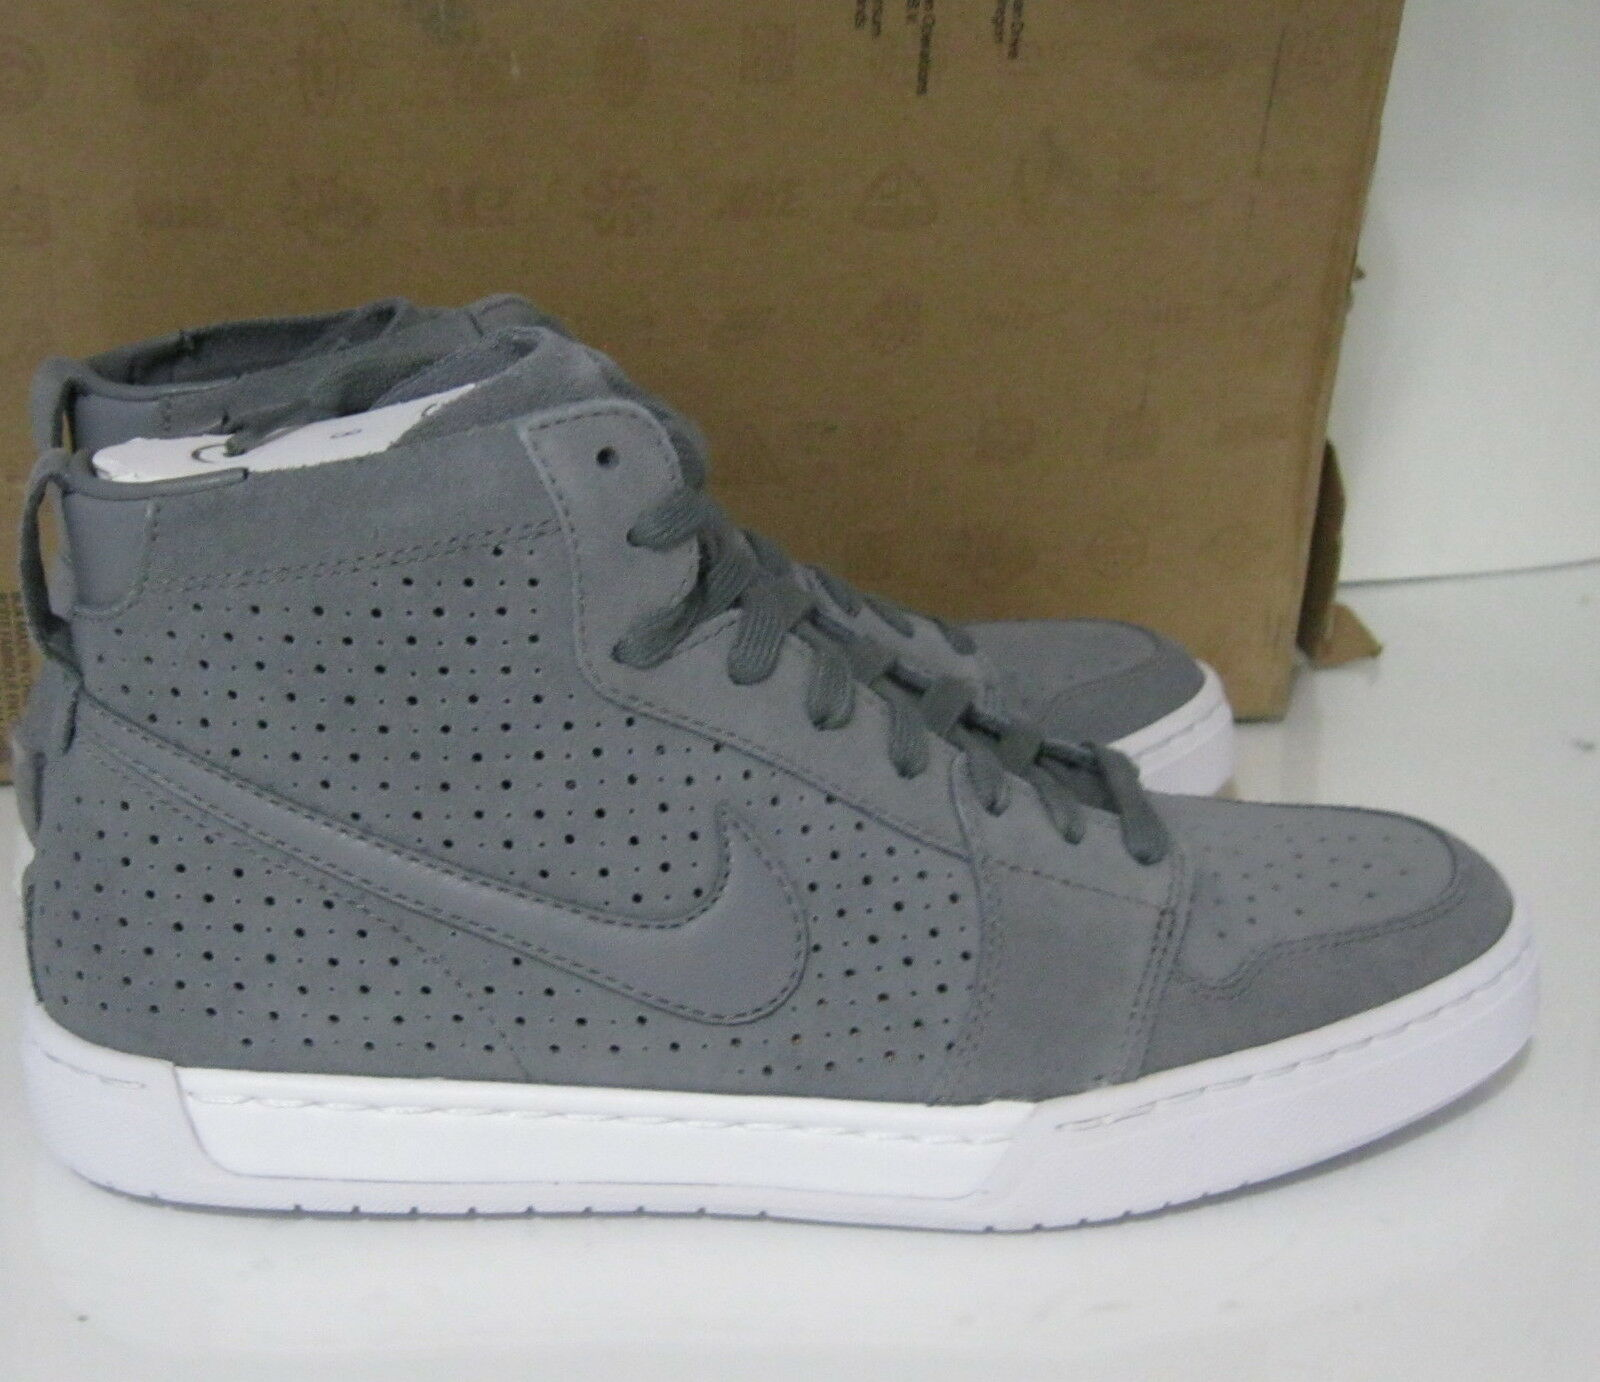 new Nike Air Royal Mid Lite Grey 434493-008 Grays, Medium Athletic Size 8